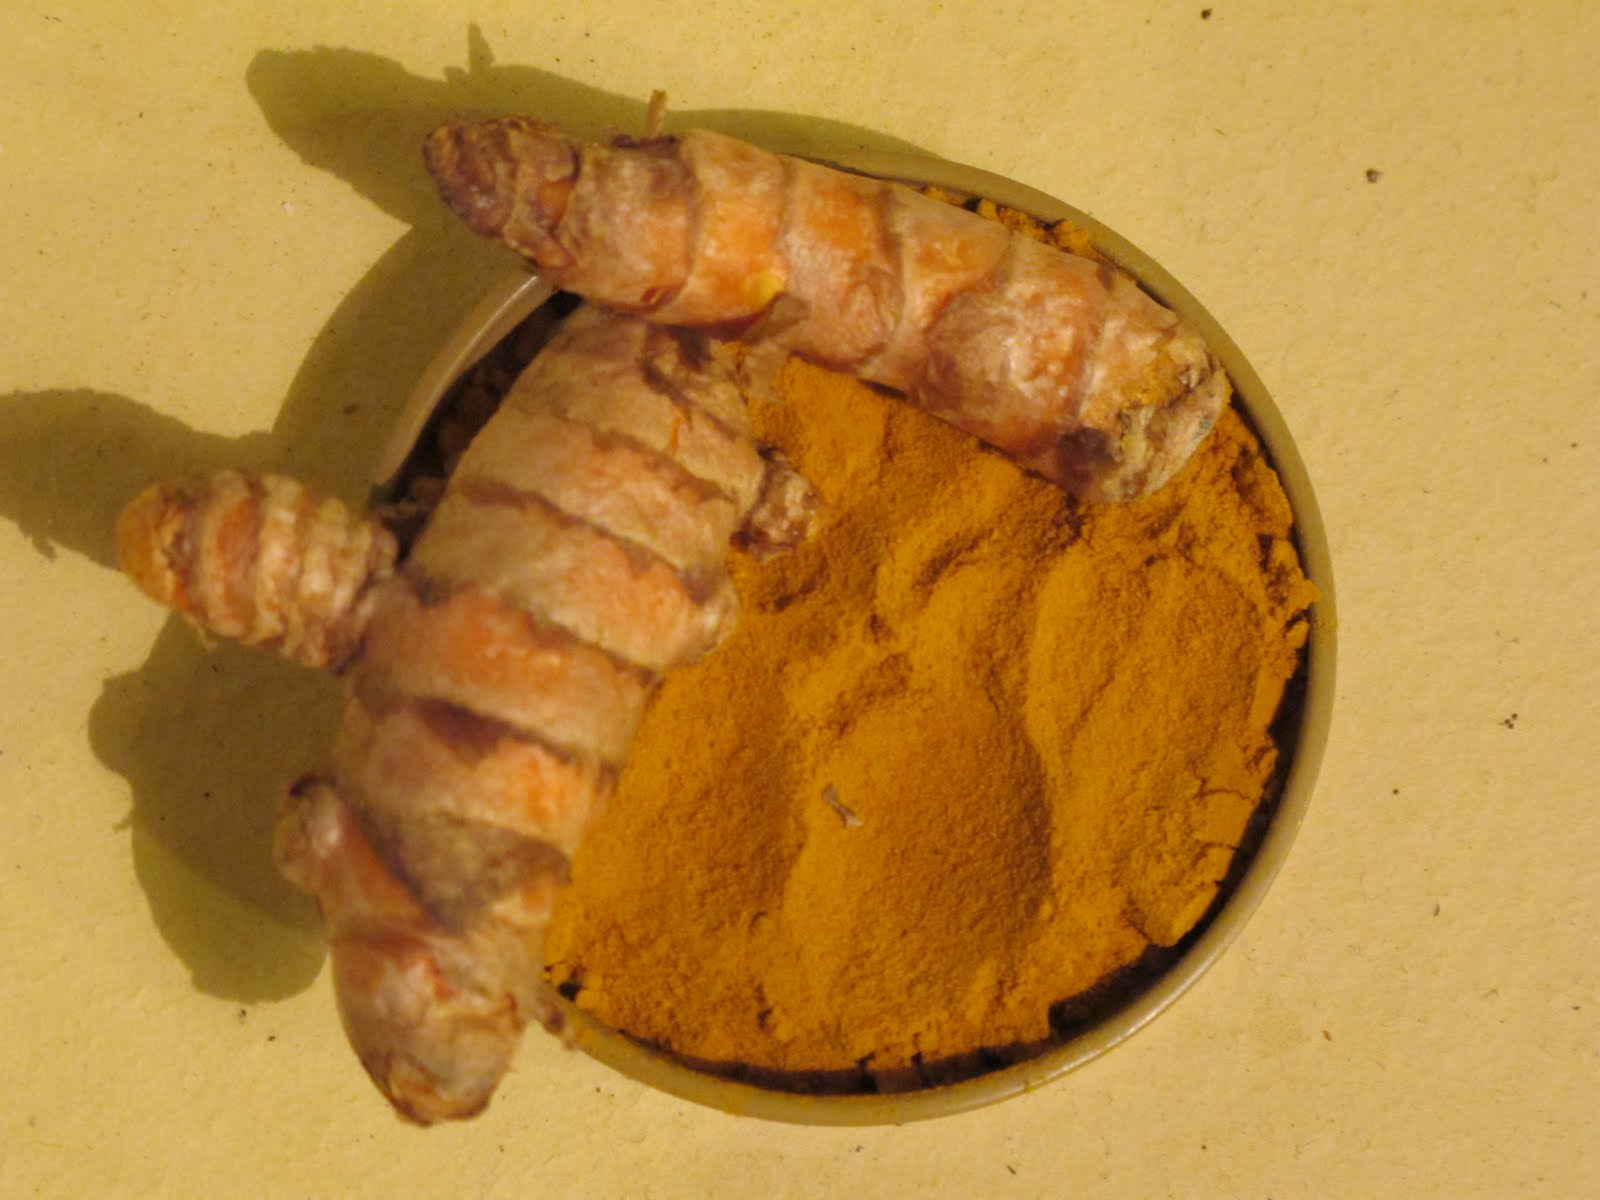 Ultra Cool Fun 20 Reasons To Add Turmeric To Your Diet To